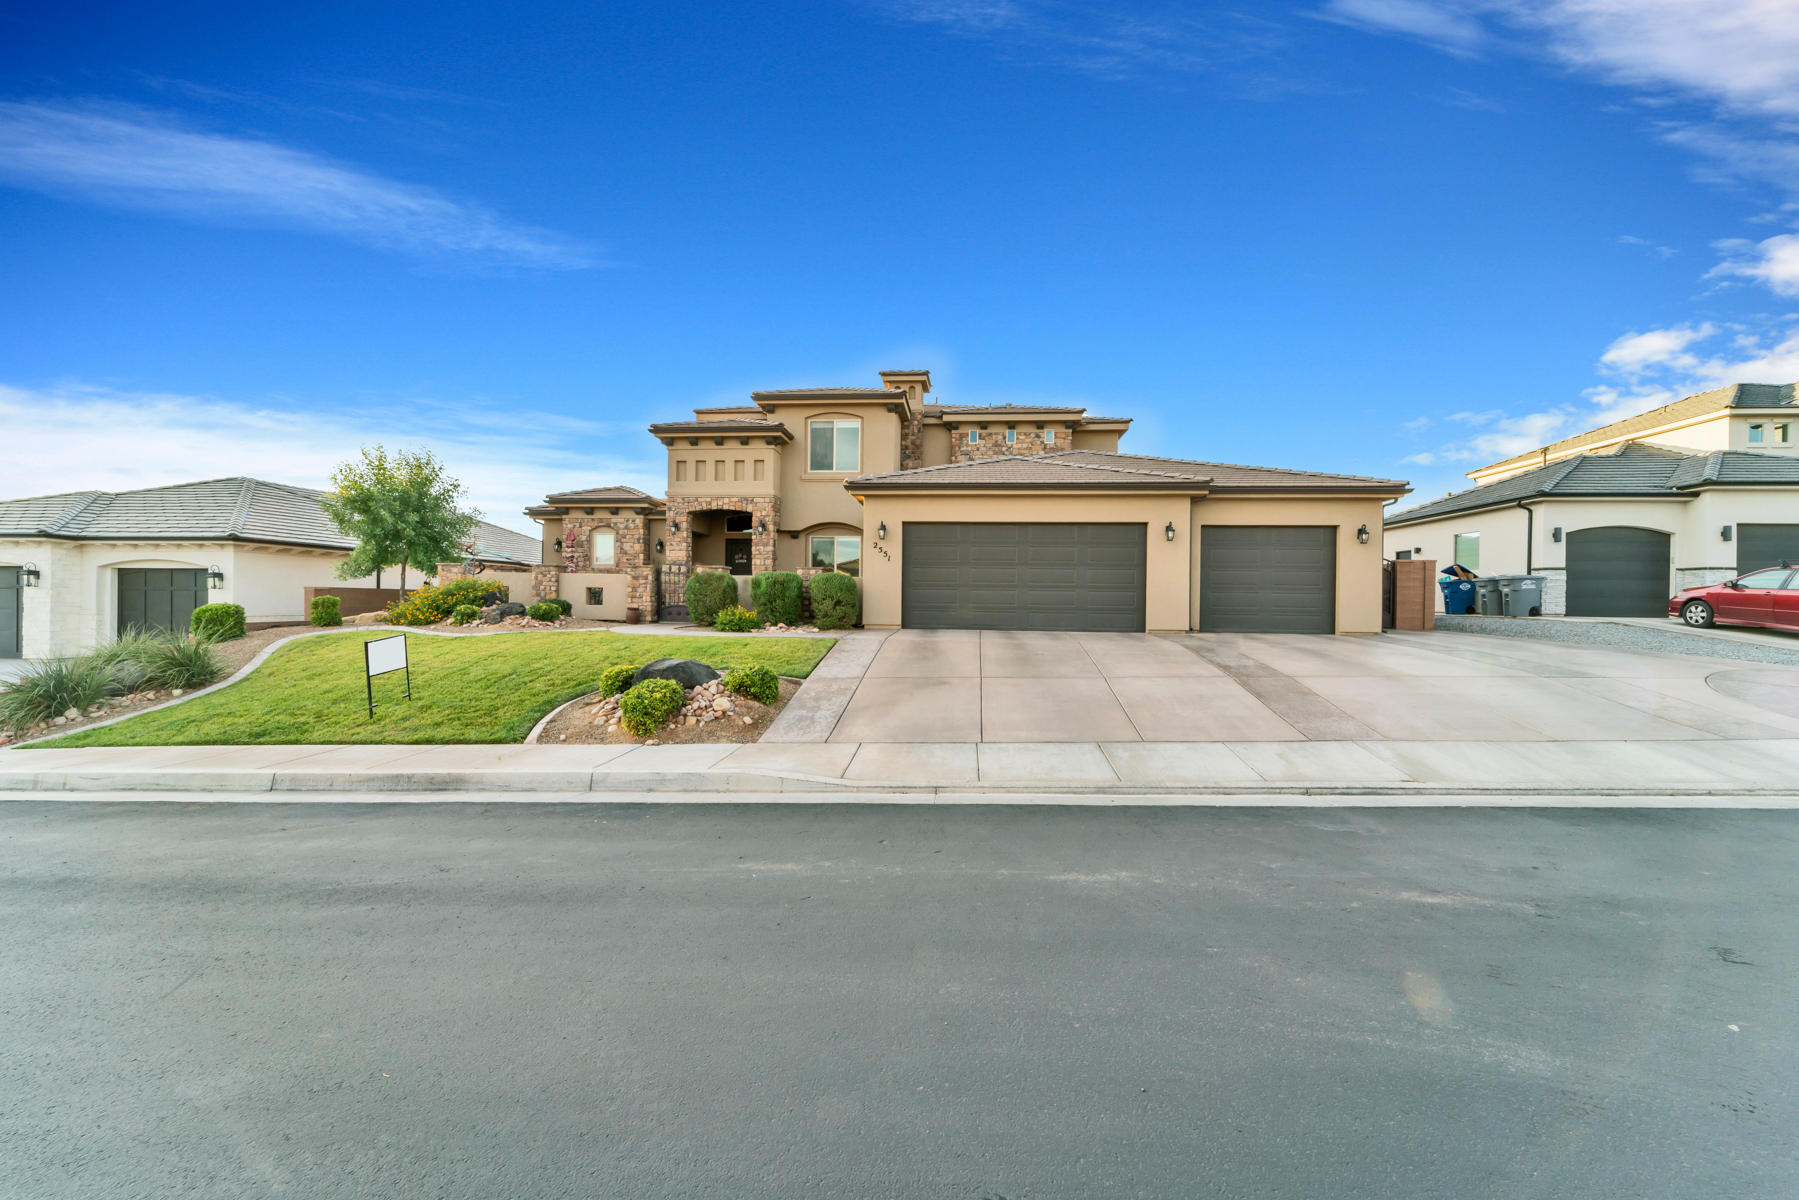 2551 E Mountain Ledge Cir, St George Ut 84790